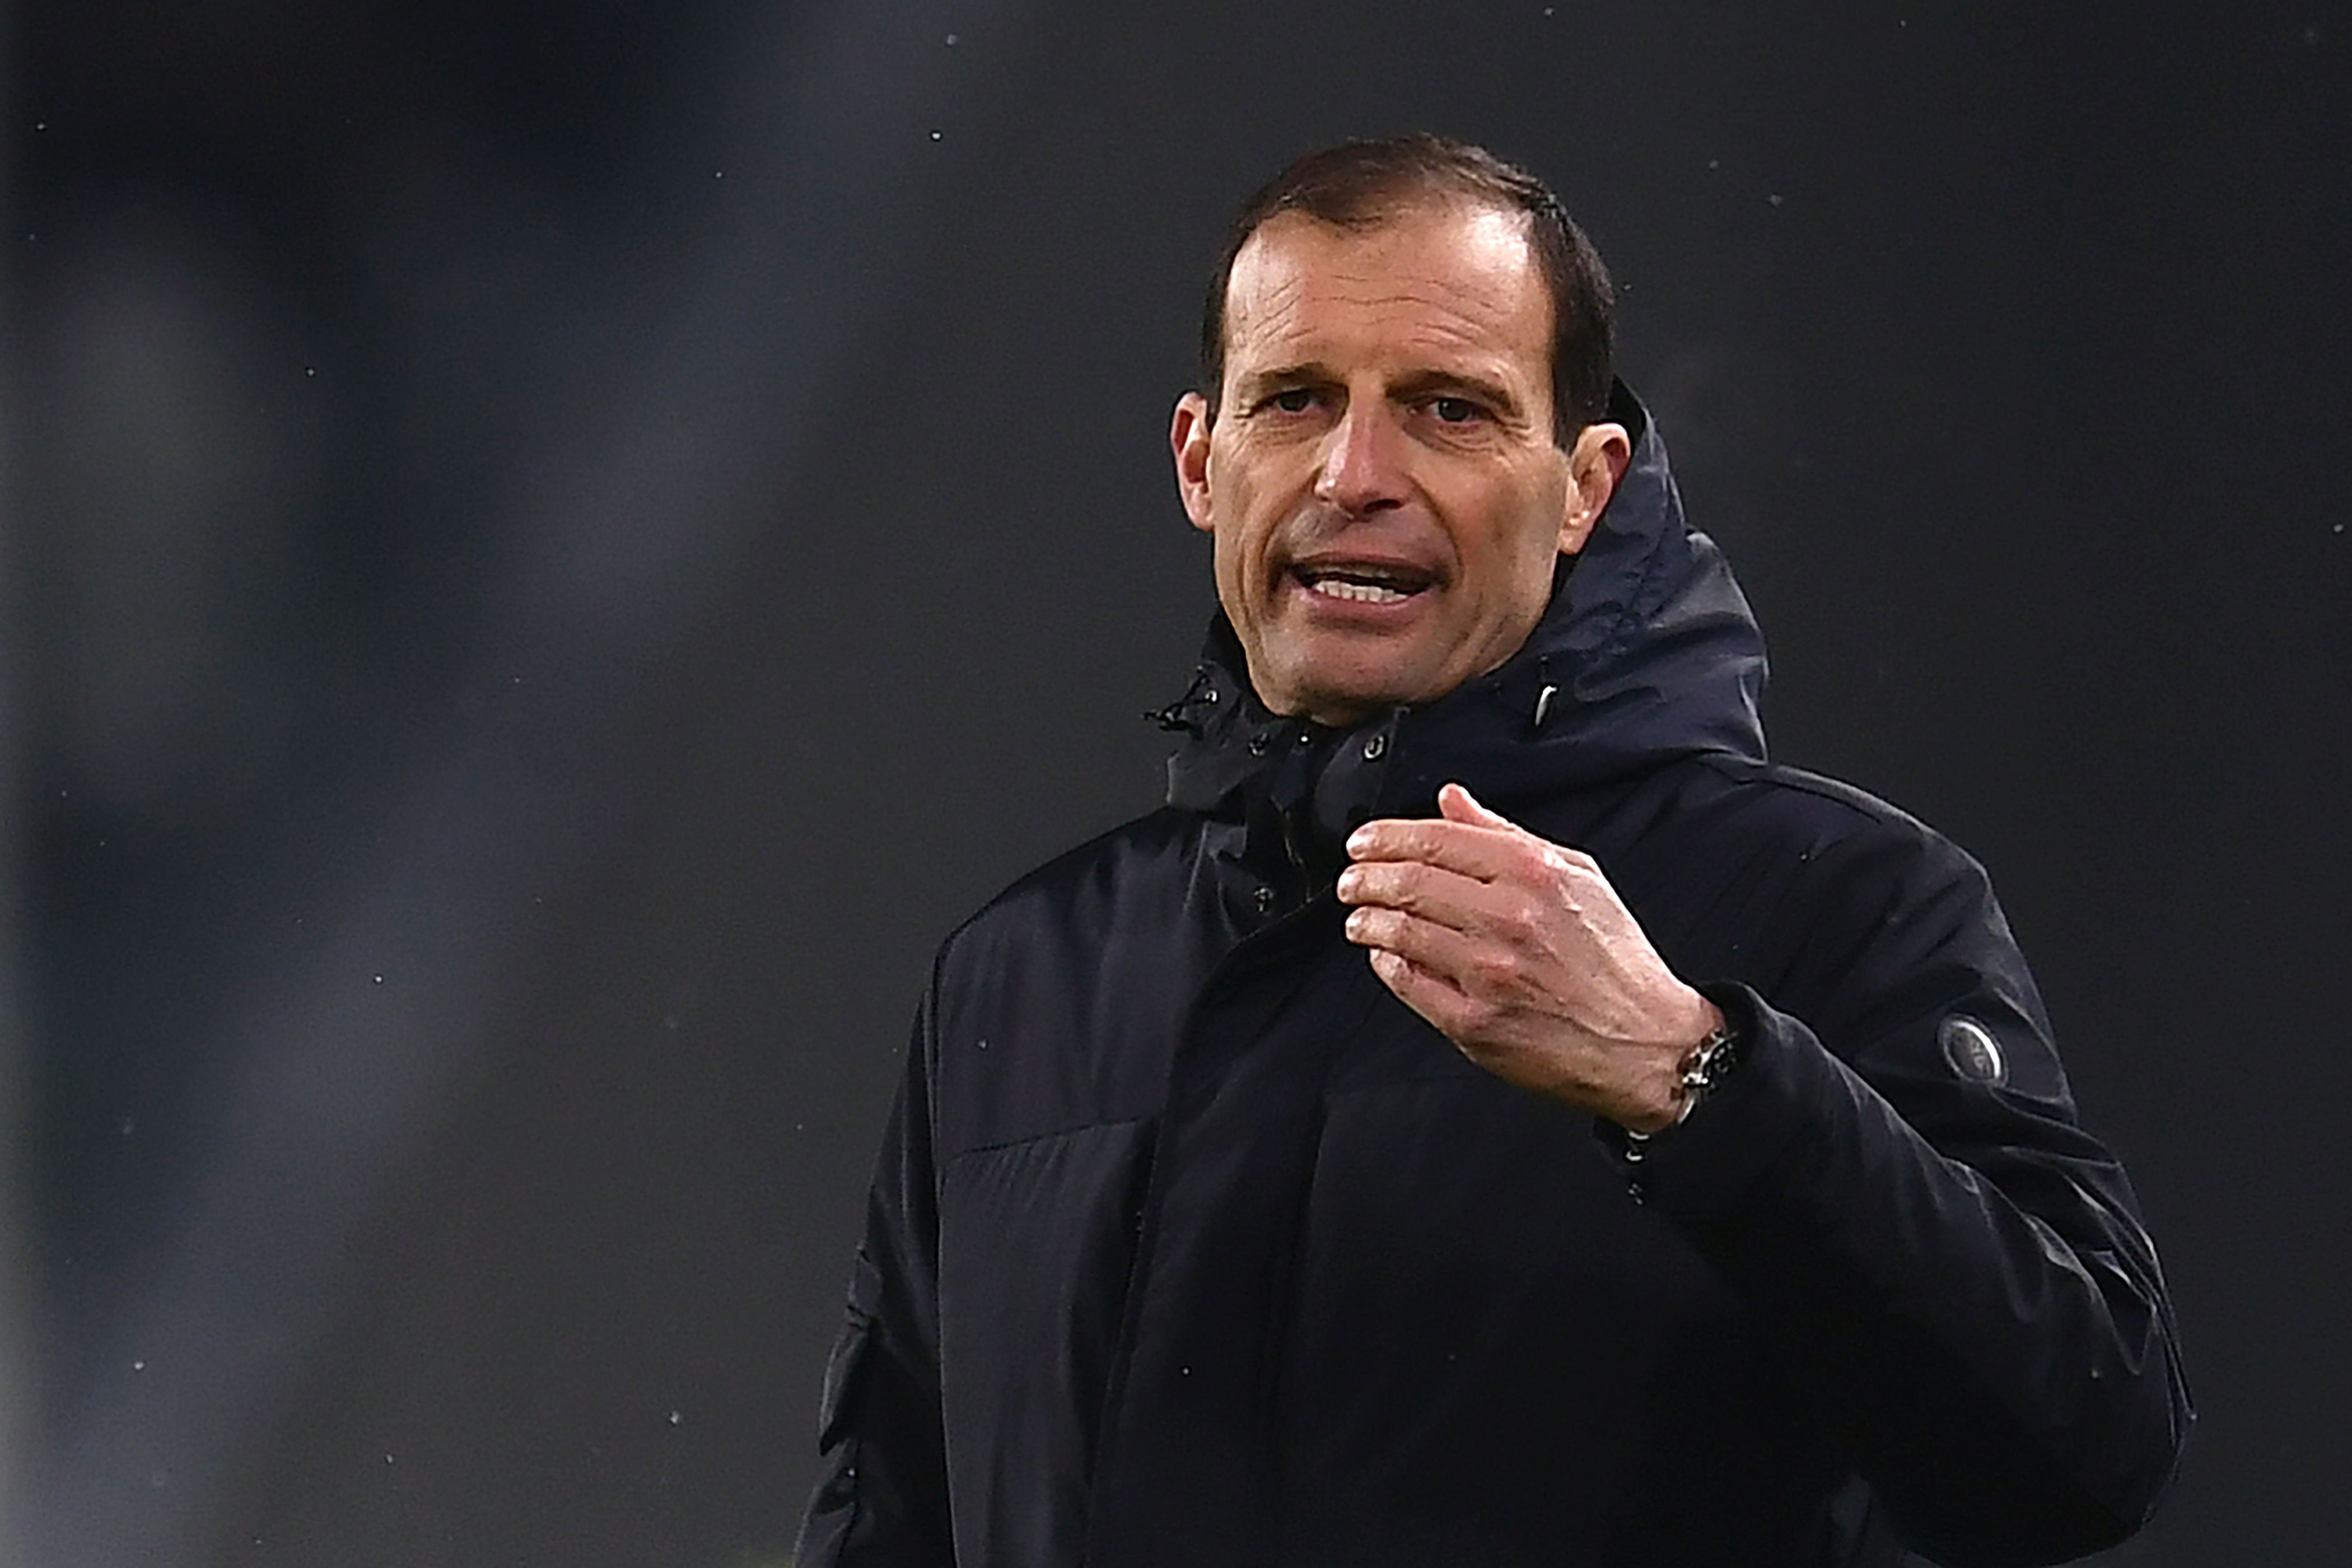 Allegri agrees to focus on youngsters and will support building for the future